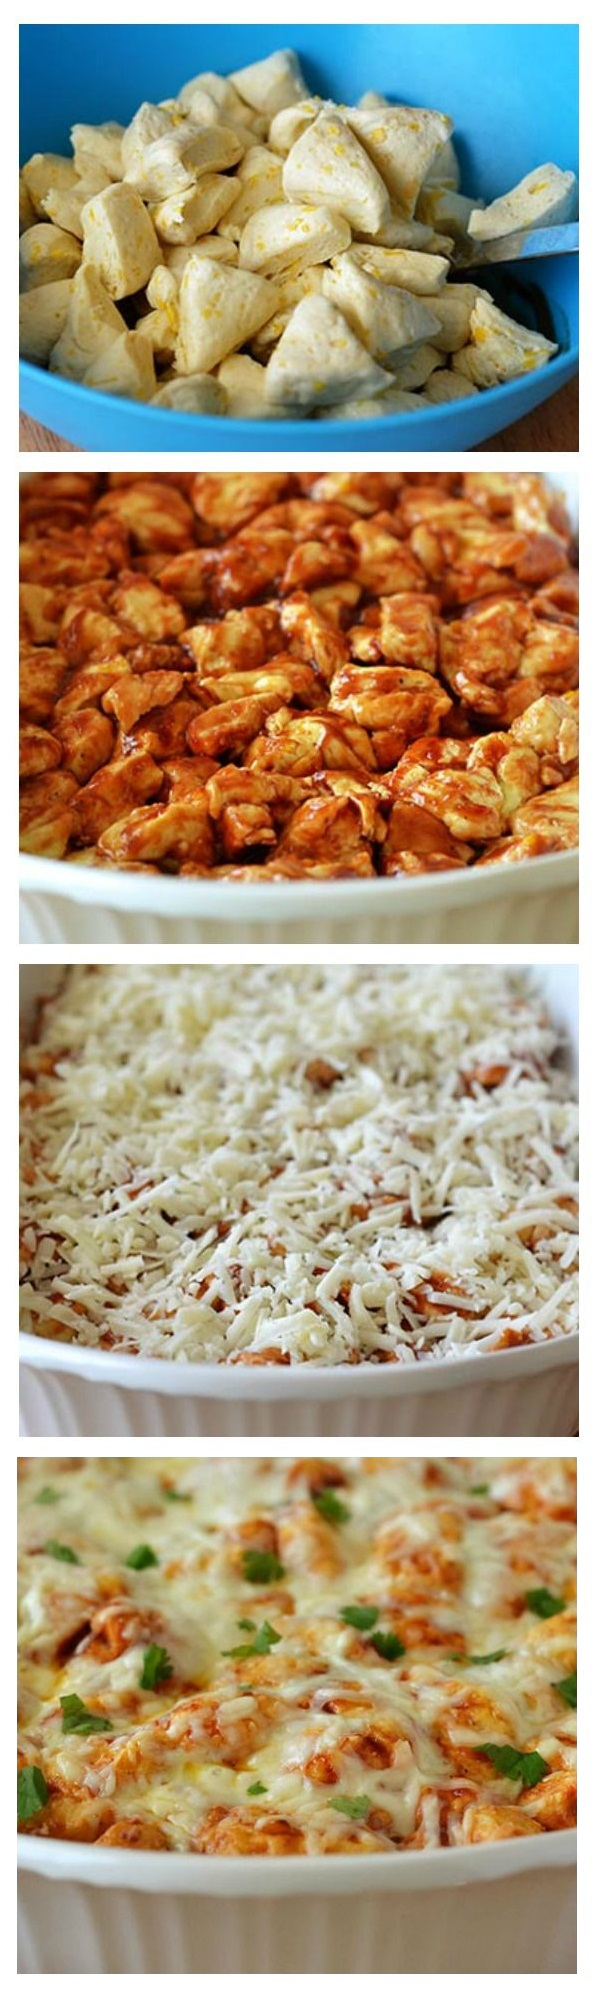 Barbecue-Chicken-Bubble-Up-Bake-Recipe